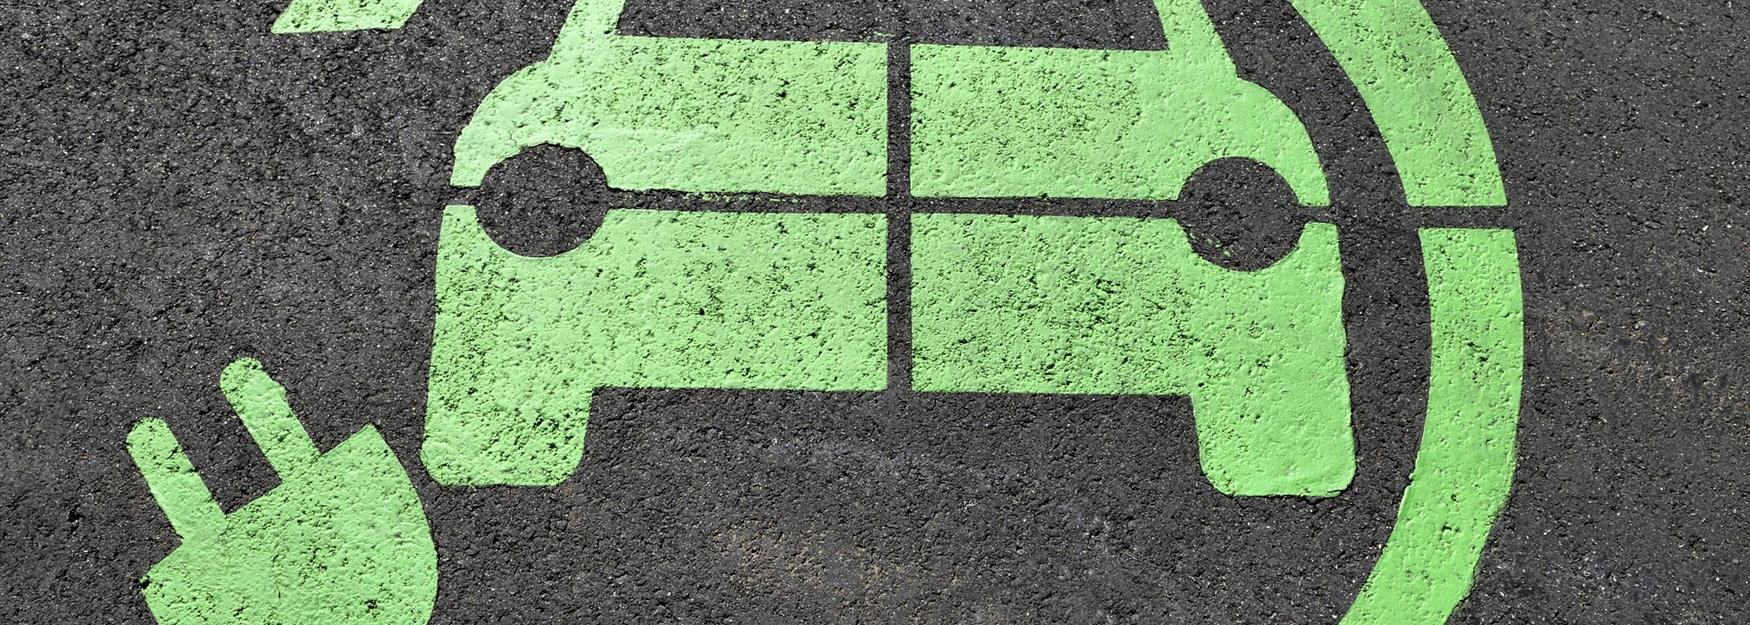 Close up of an electric car charging floor stencil